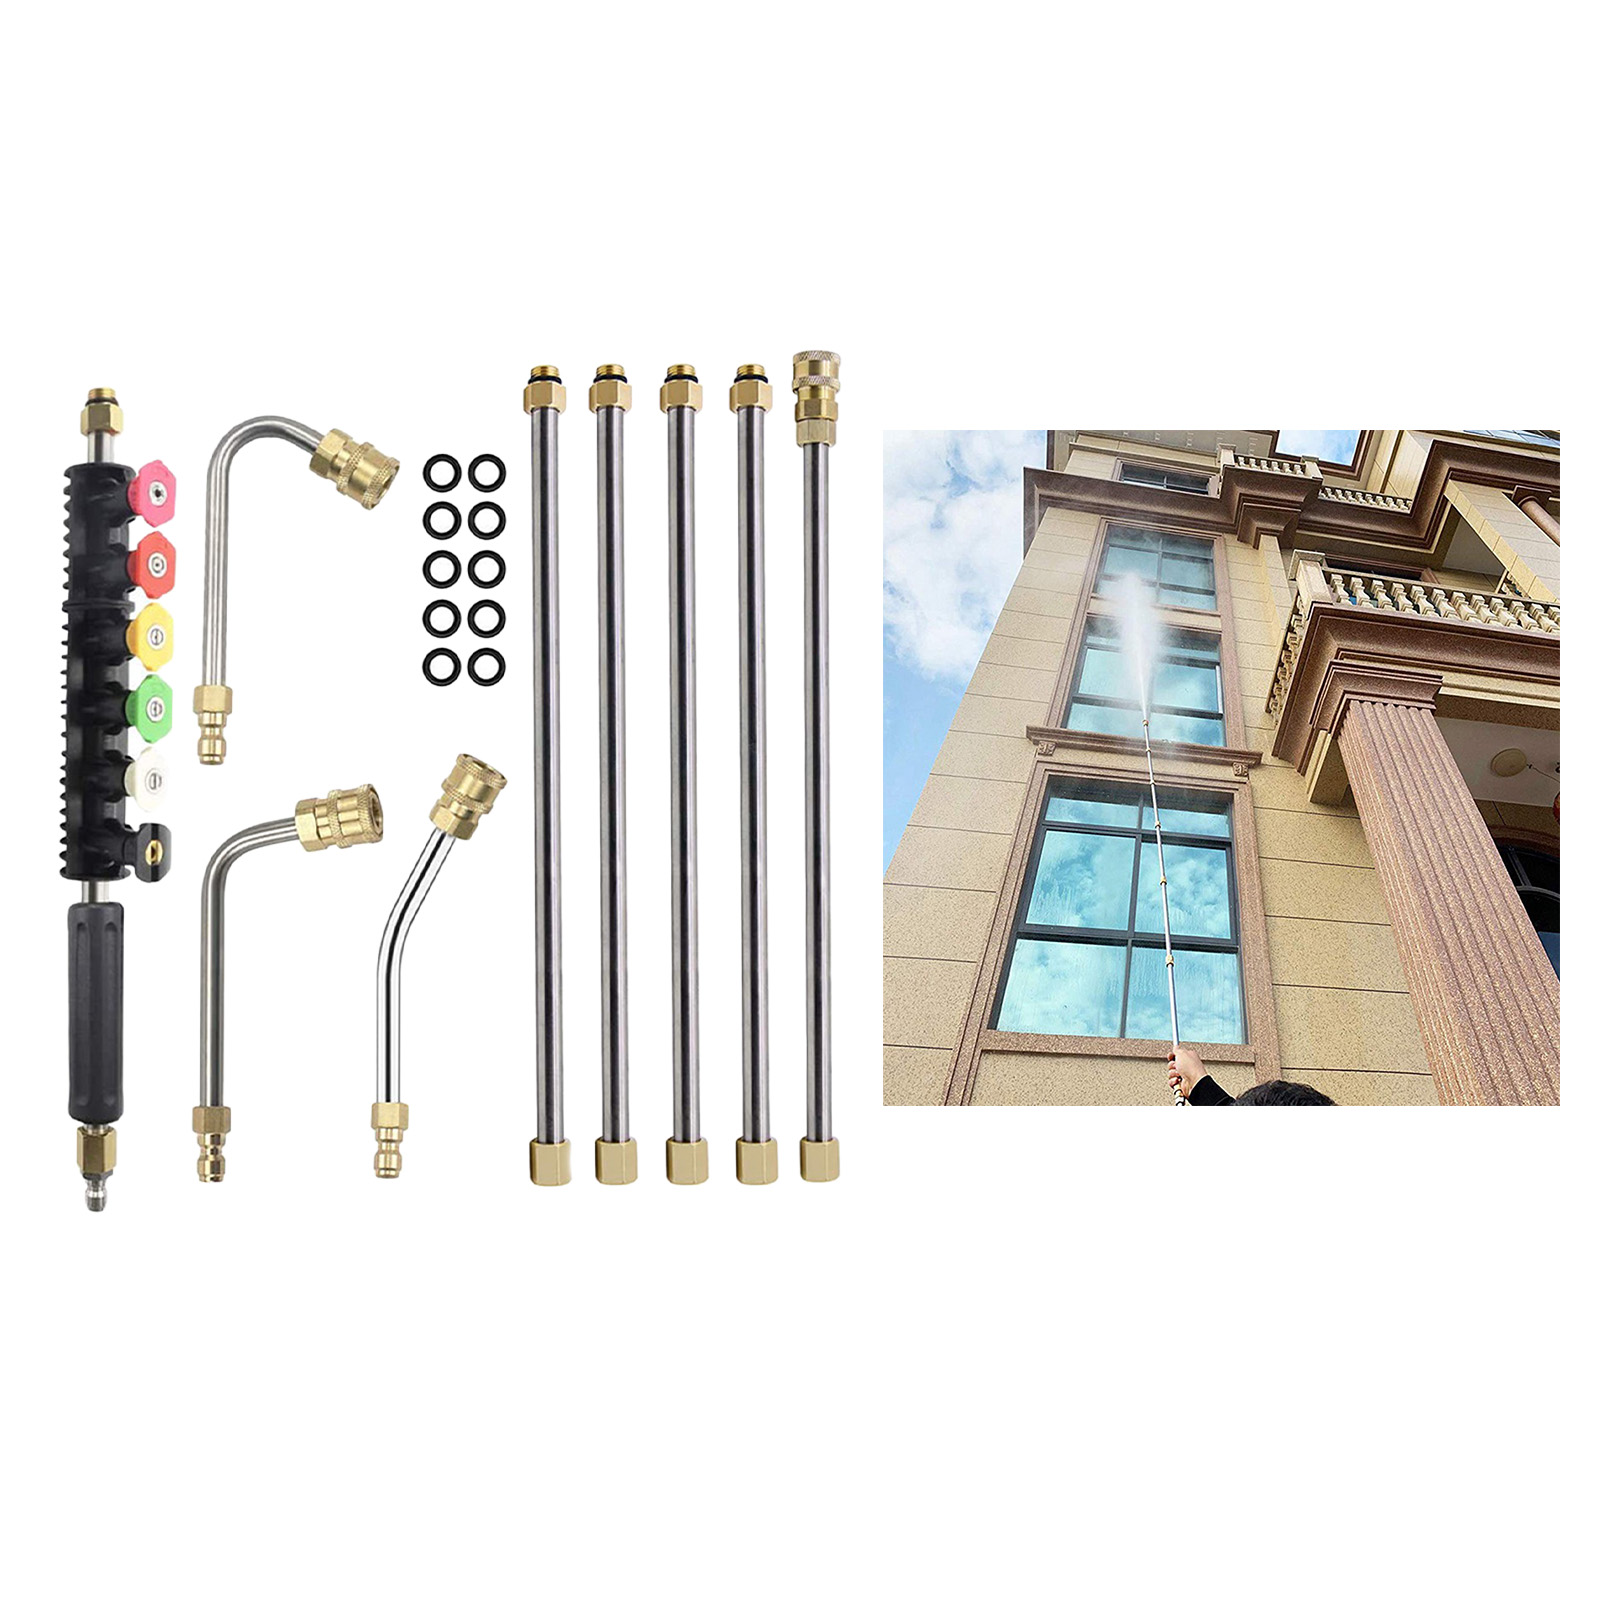 Pressure Washer Attachment Set - Power Washer Hose Attachment with 6 Spray Nozzle Tips - 4000PSI Gutter Cleaner Extensions